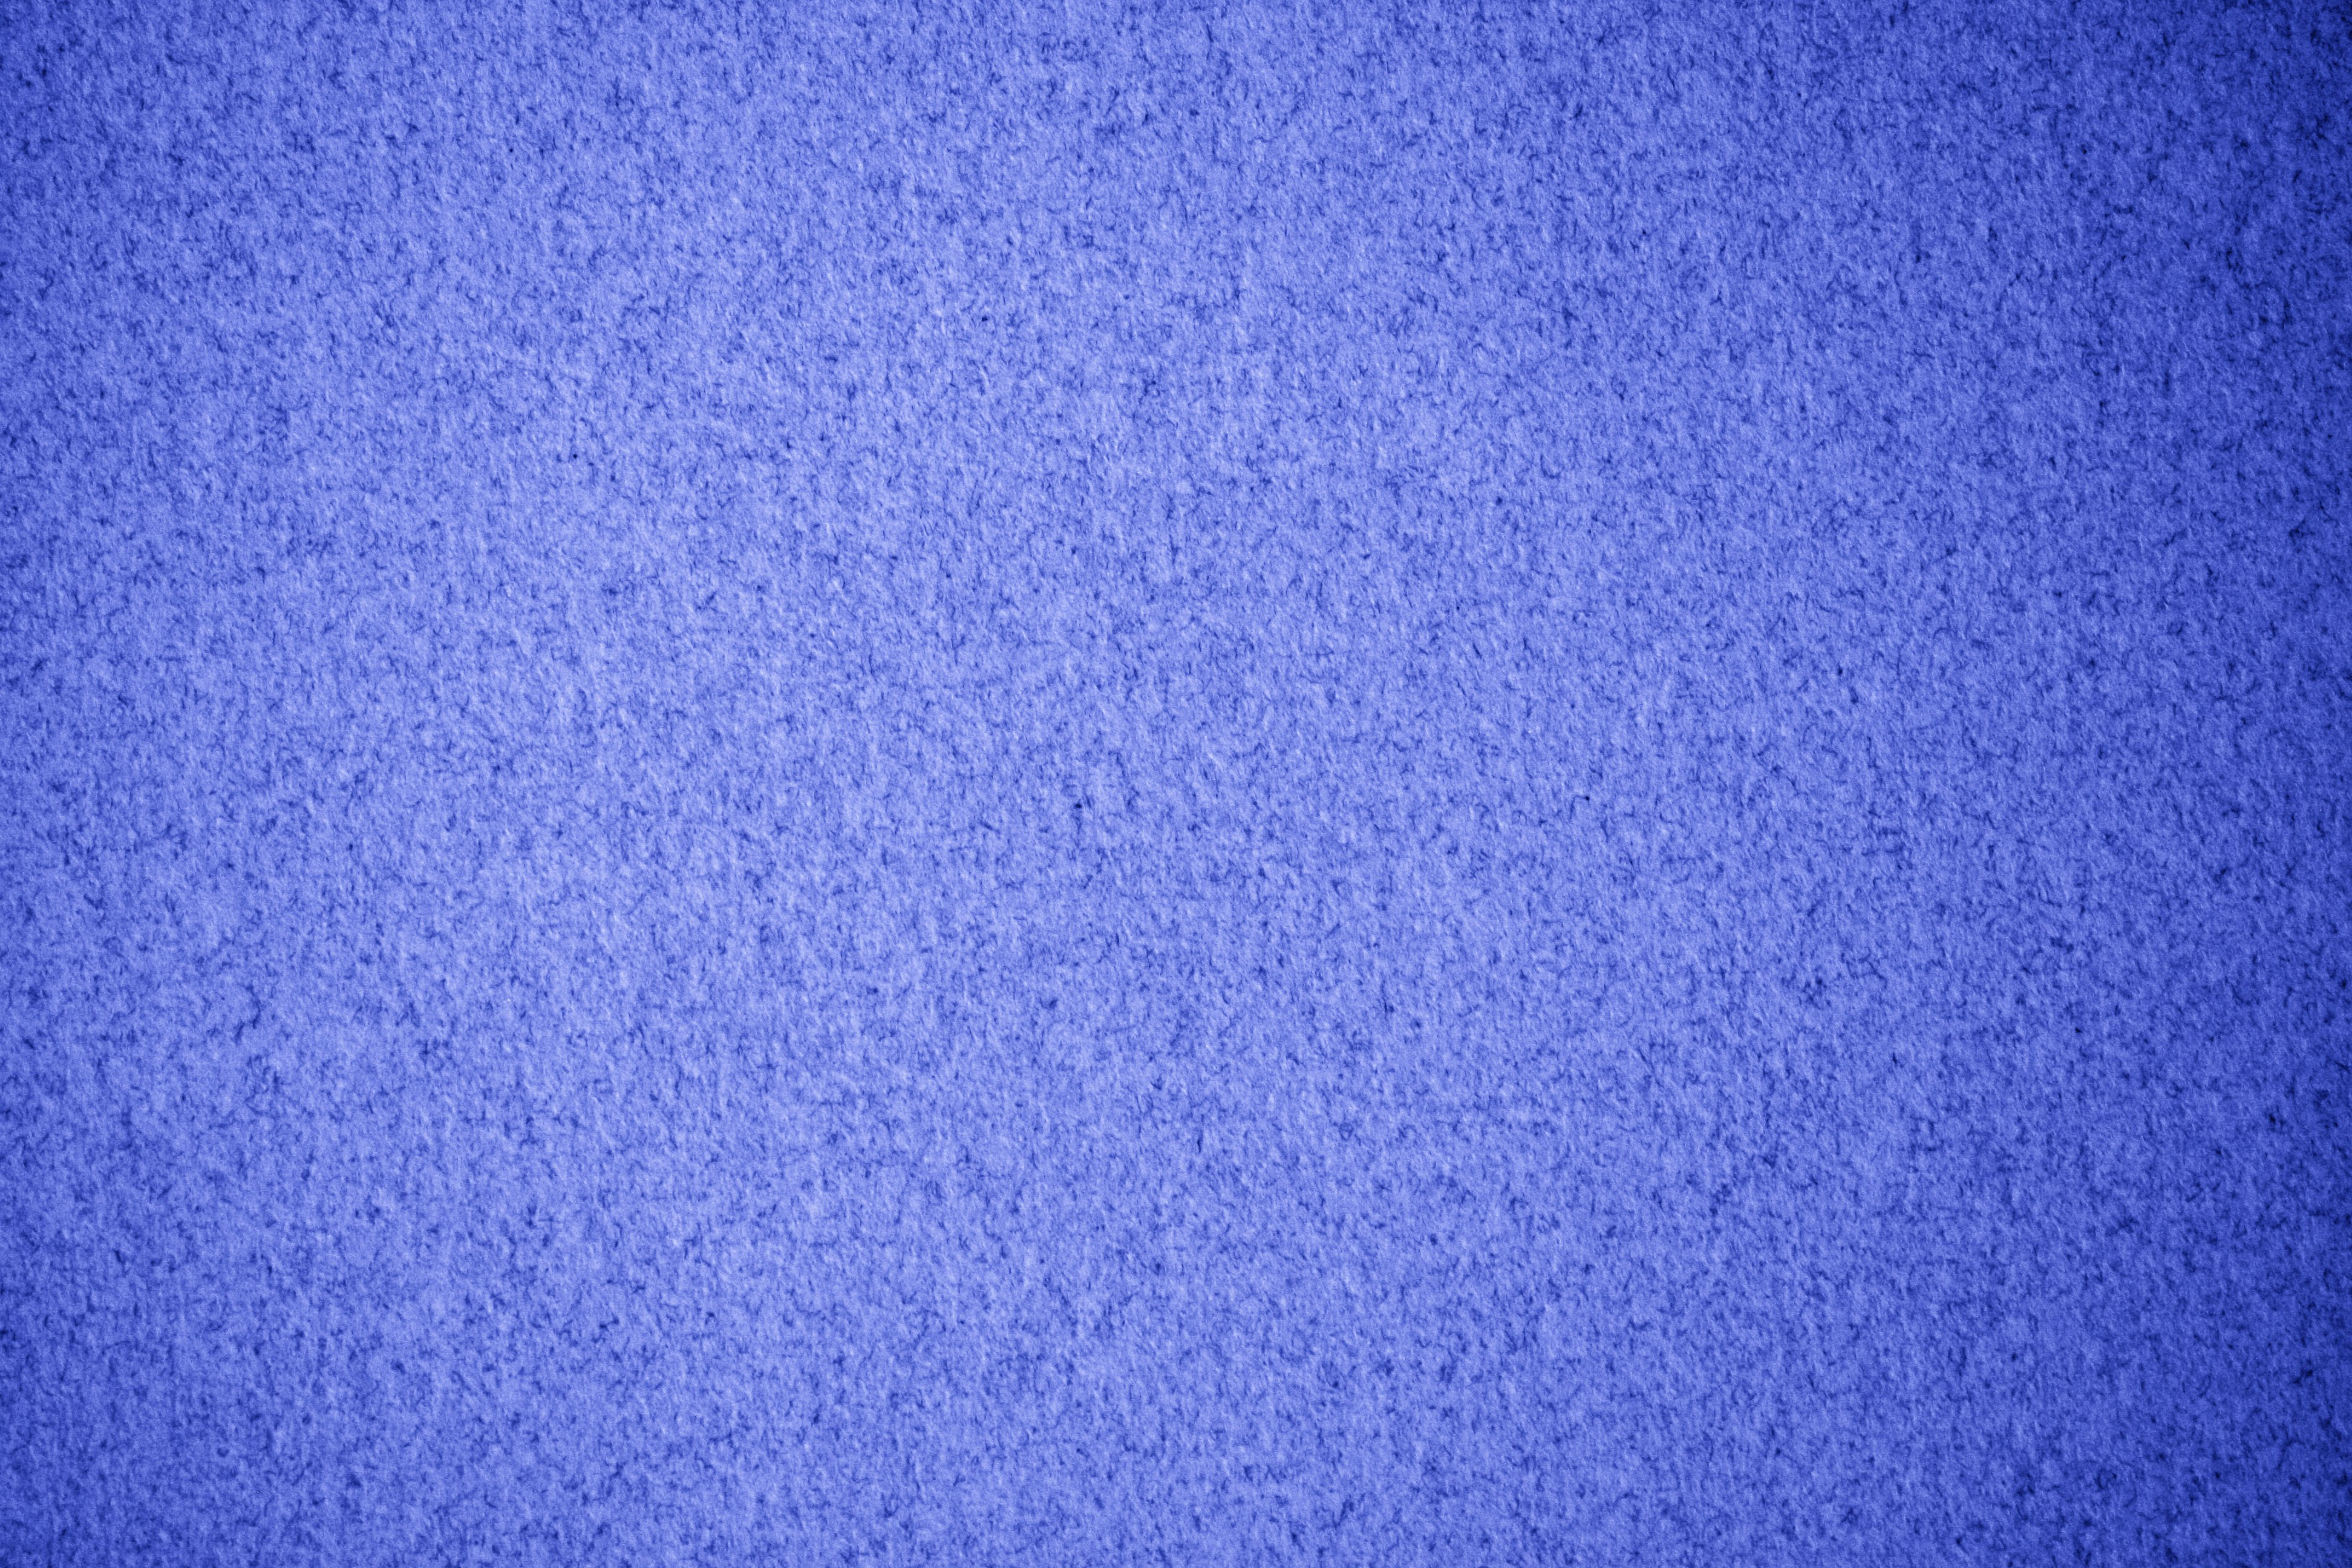 Blue Speckled Paper Texture Picture | Free Photograph | Photos ...